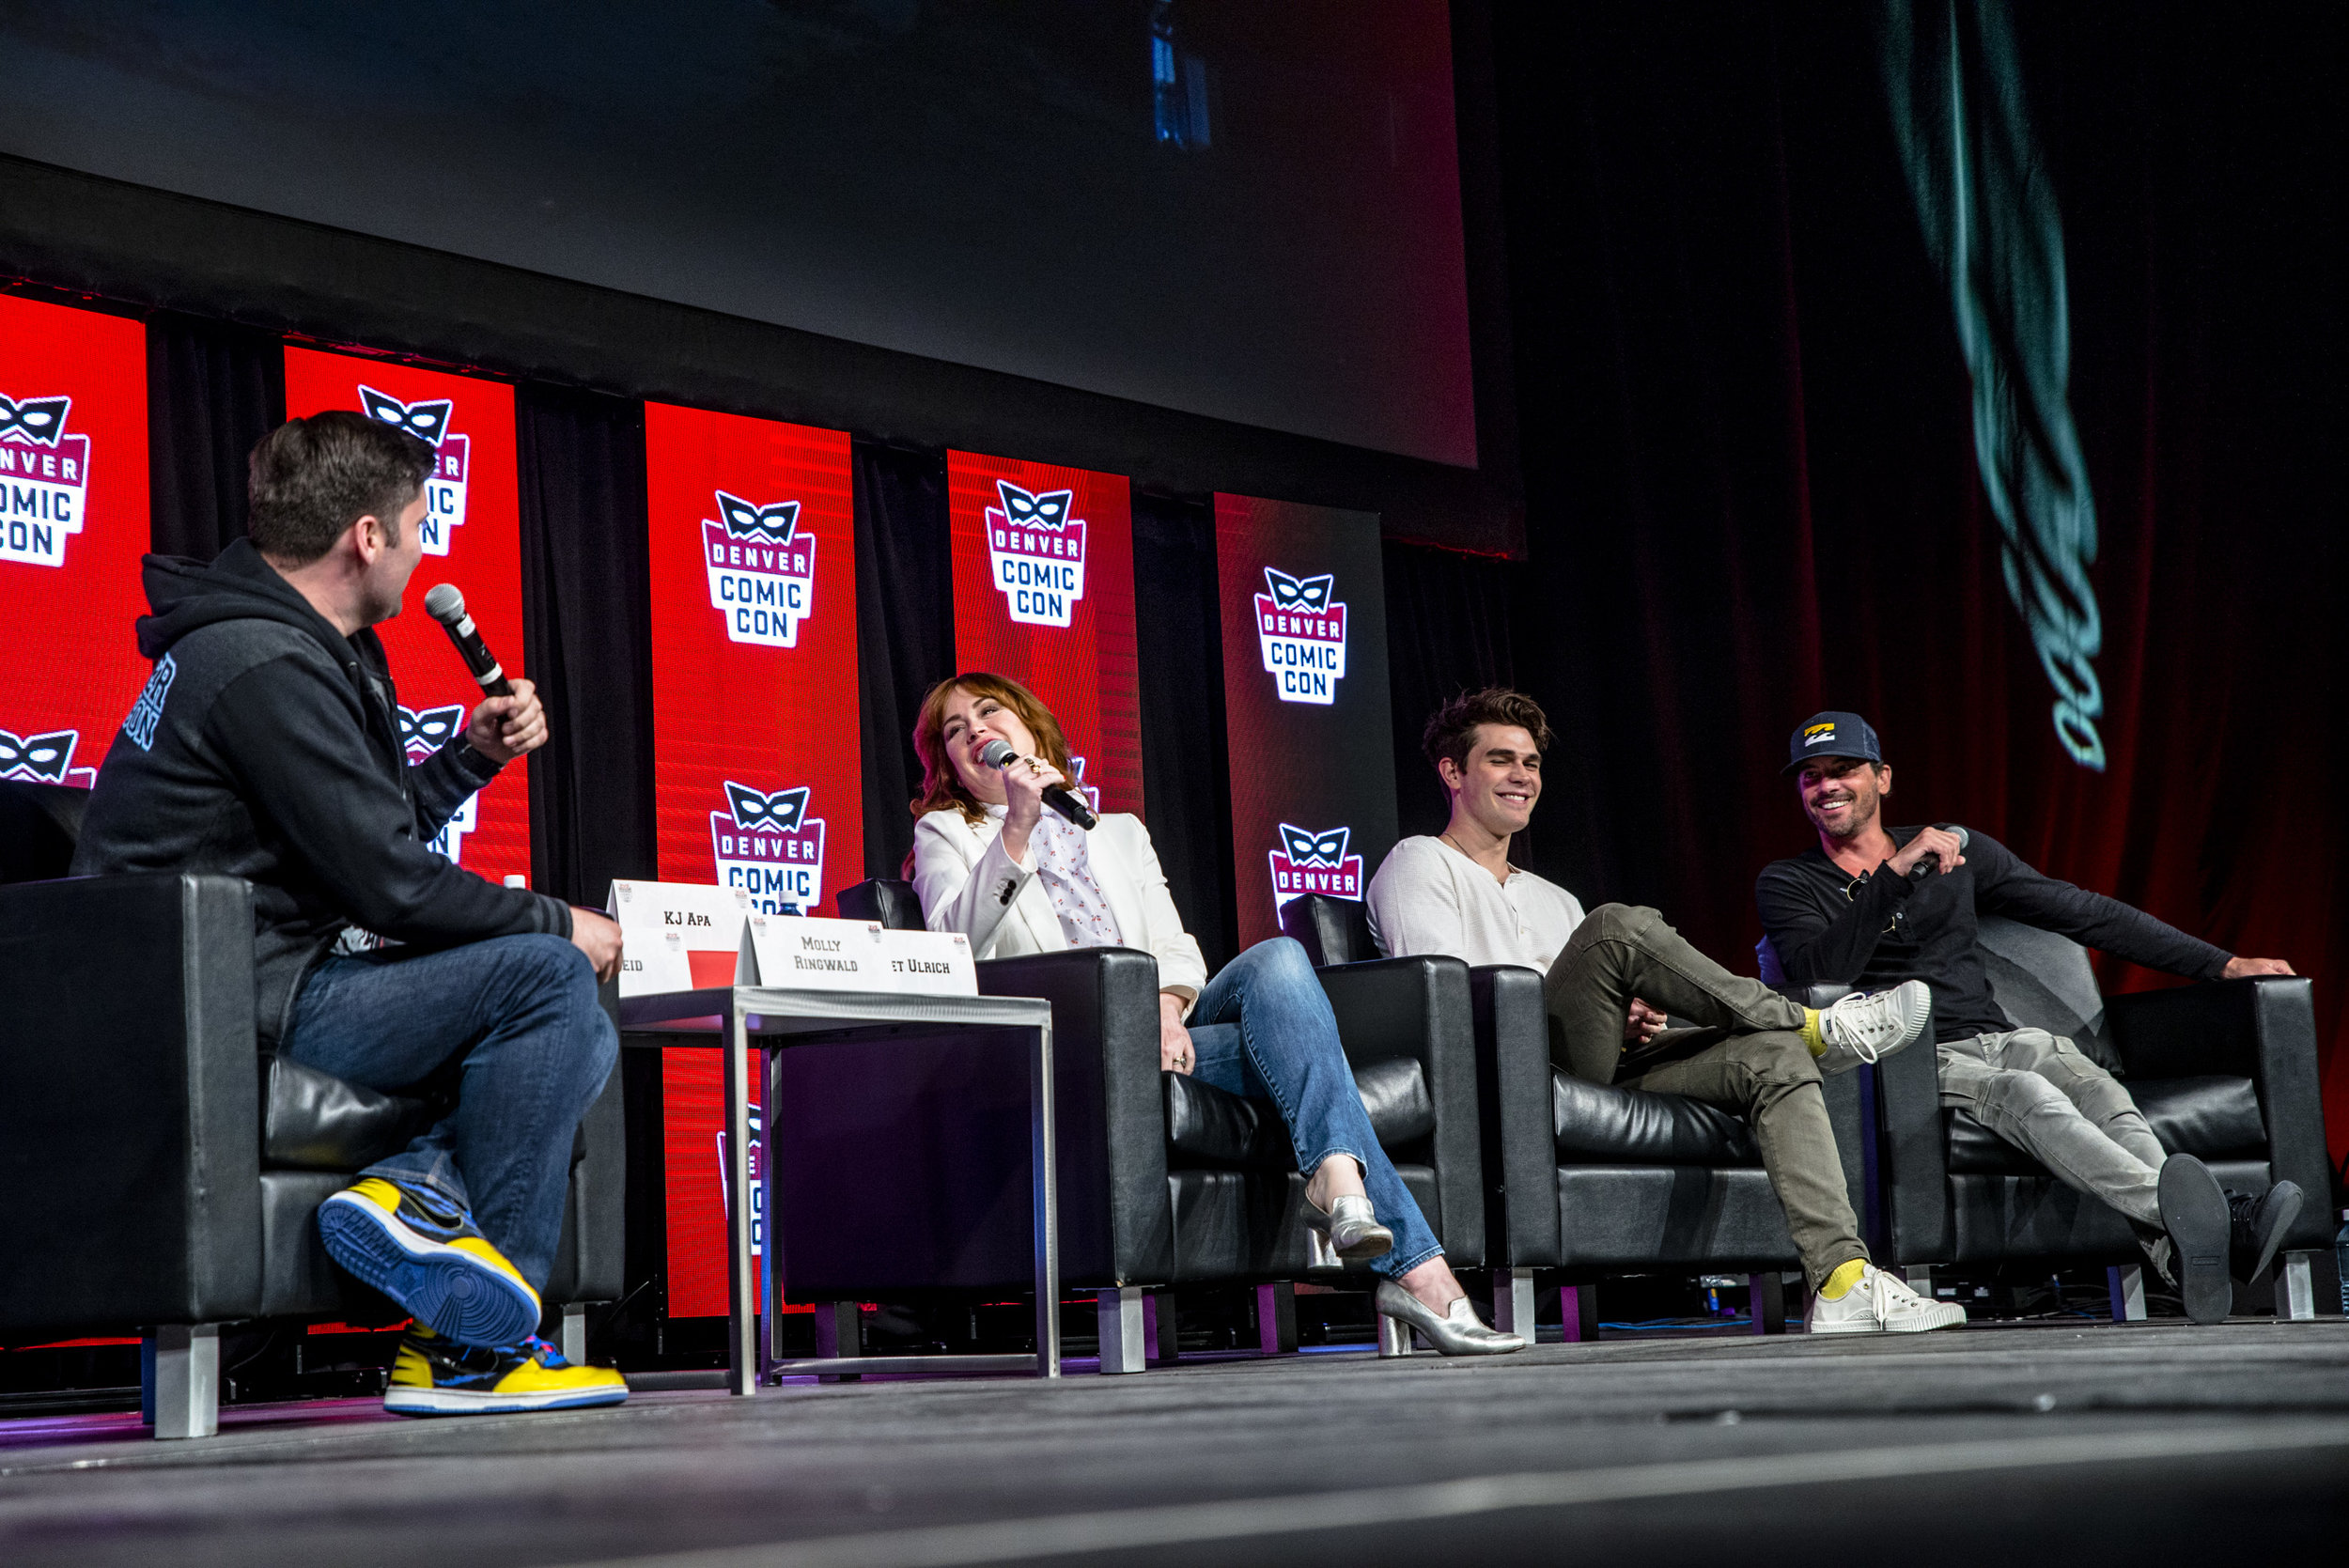 The Riverdale panel with KJ Apa, Skeet Ulrich and Molly Ringwald. (Photo: Austin Voldseth)